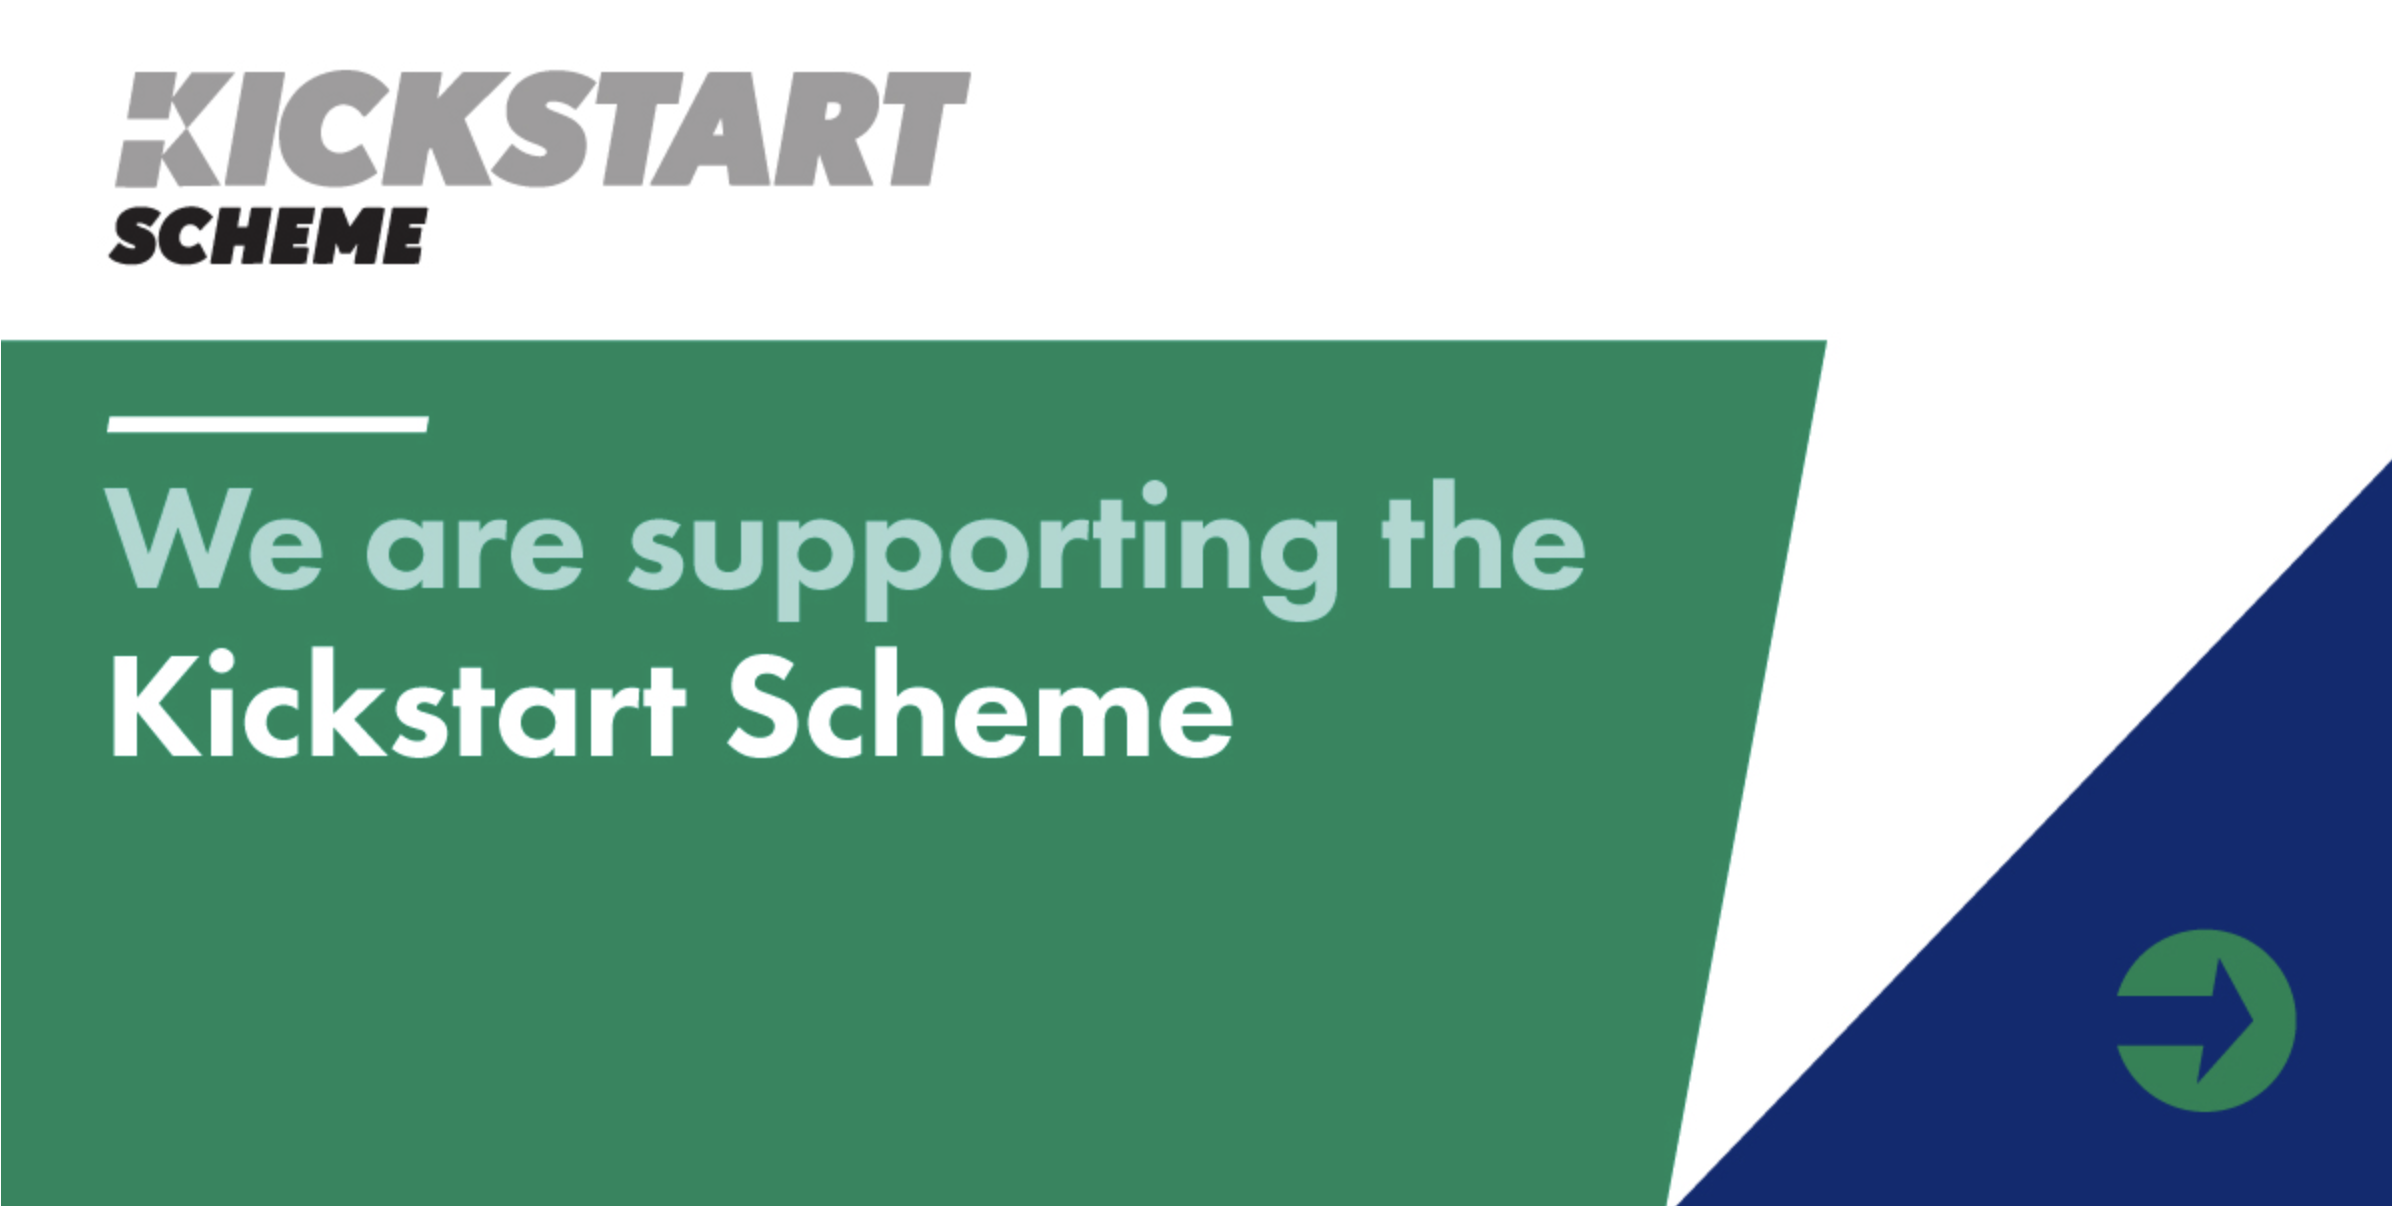 We are supporting Kickstart scheme